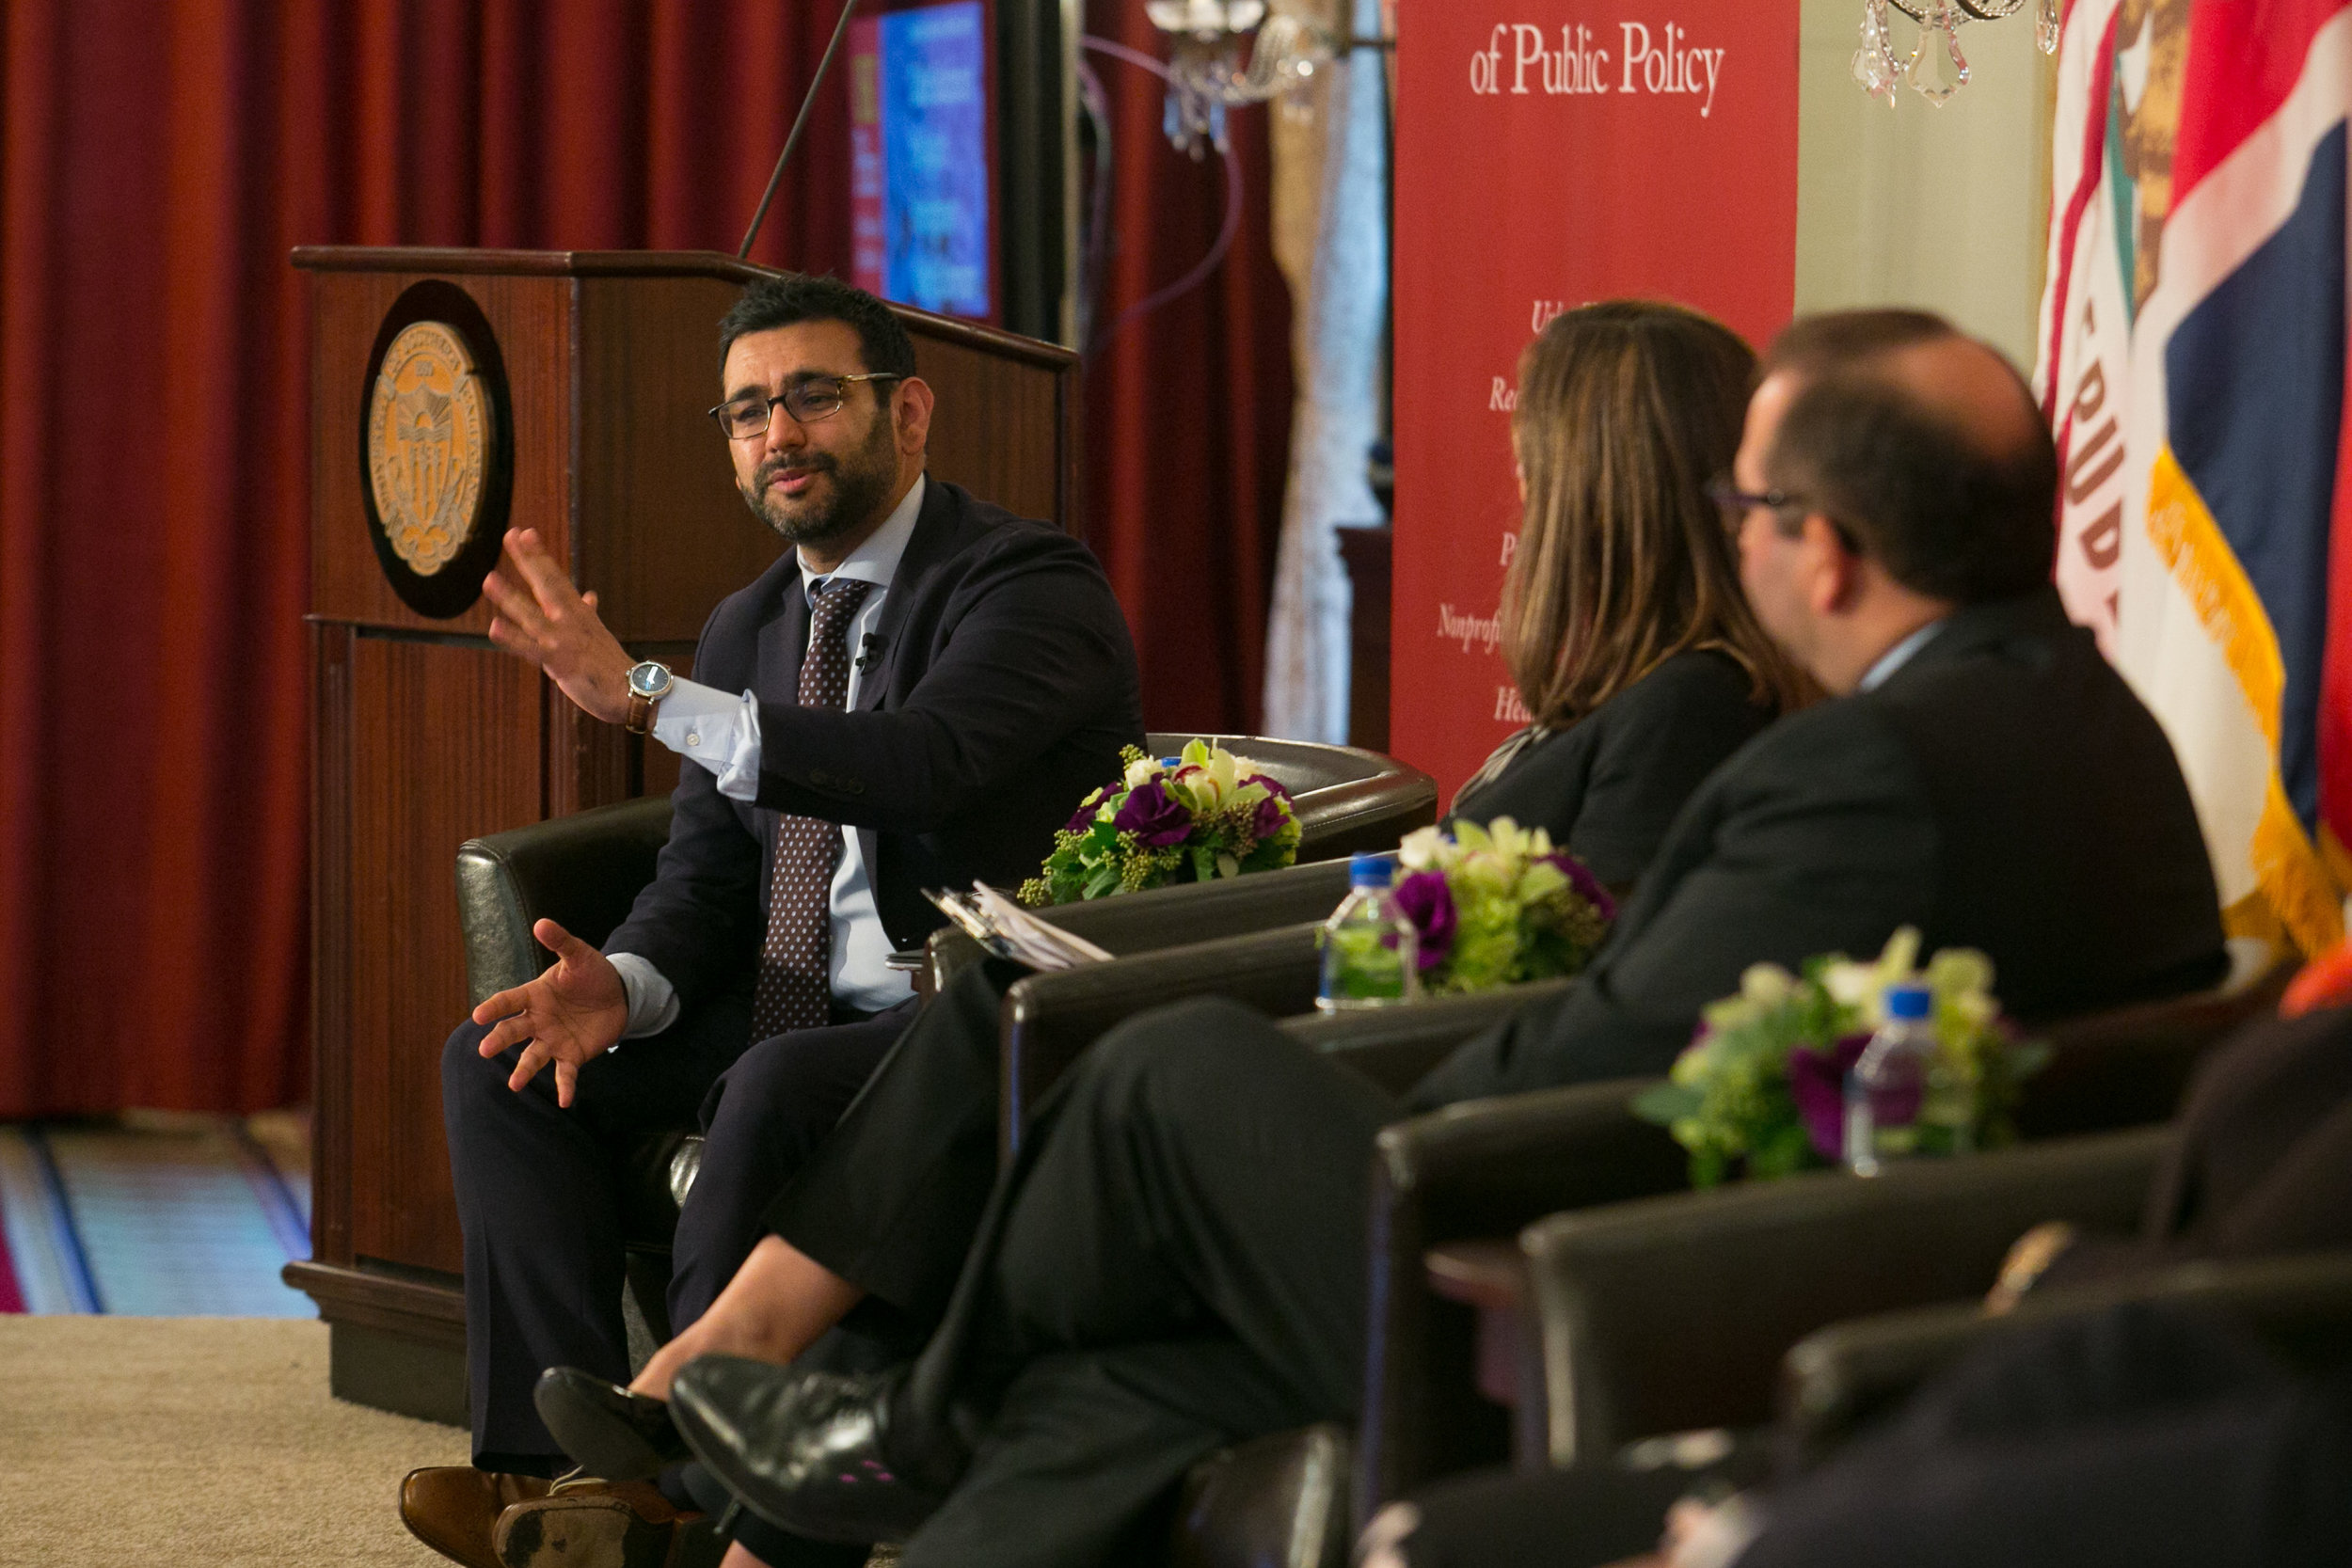 November 2017  University of Southern California - Annual Summit on Homegrown Violent Extremism  Los Angeles, CA